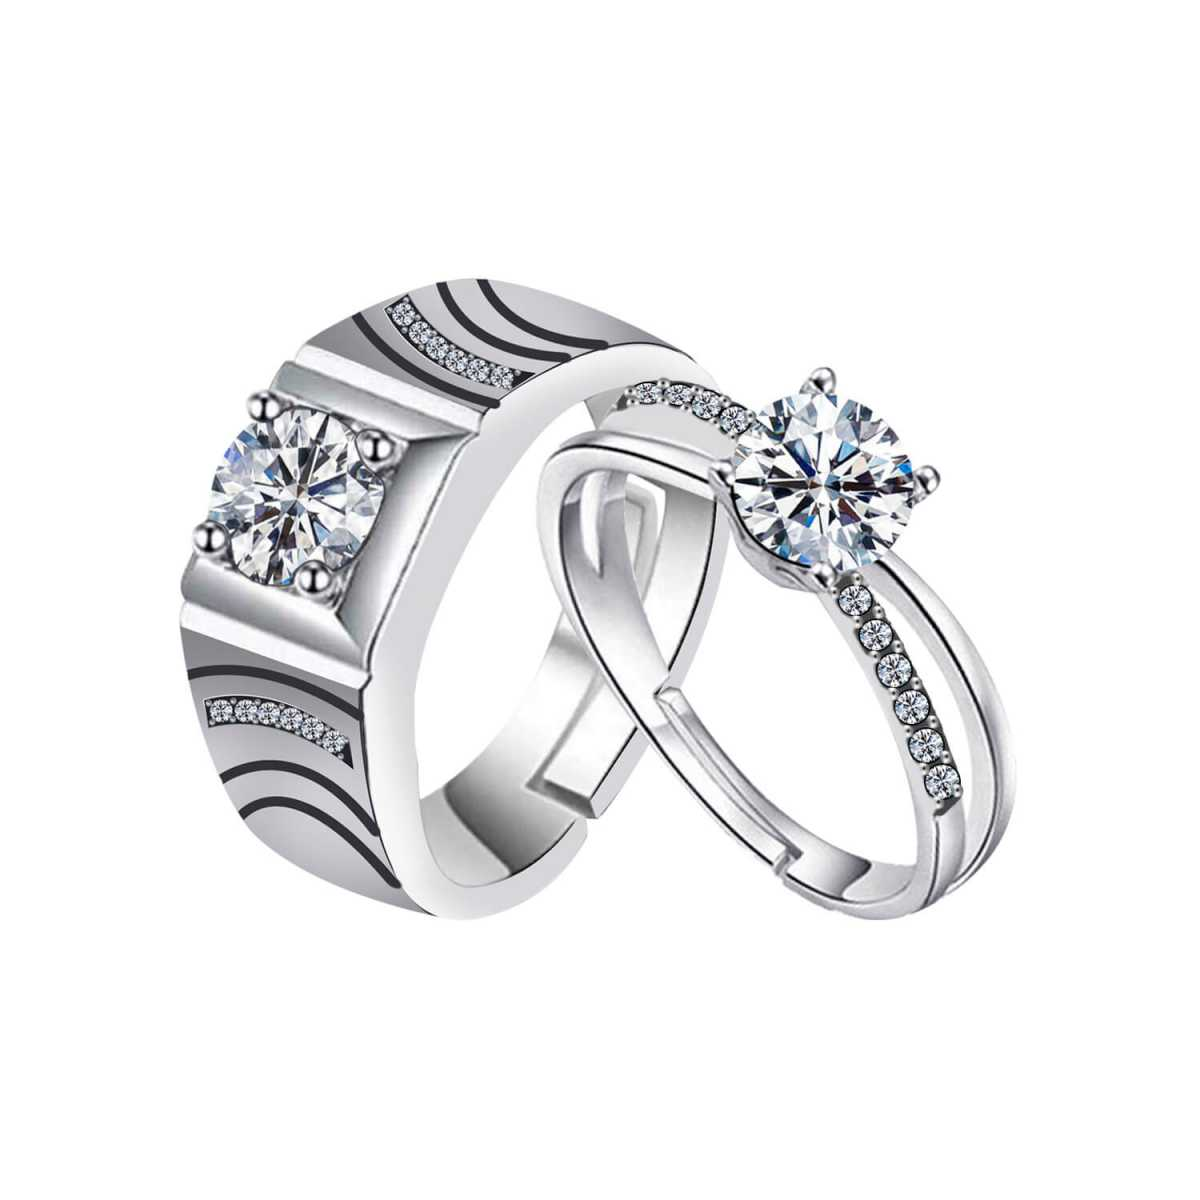 SILVERSHINE,silver plated ring courageous look for his and fairly look ring for her adjustable couple ring for men and women.